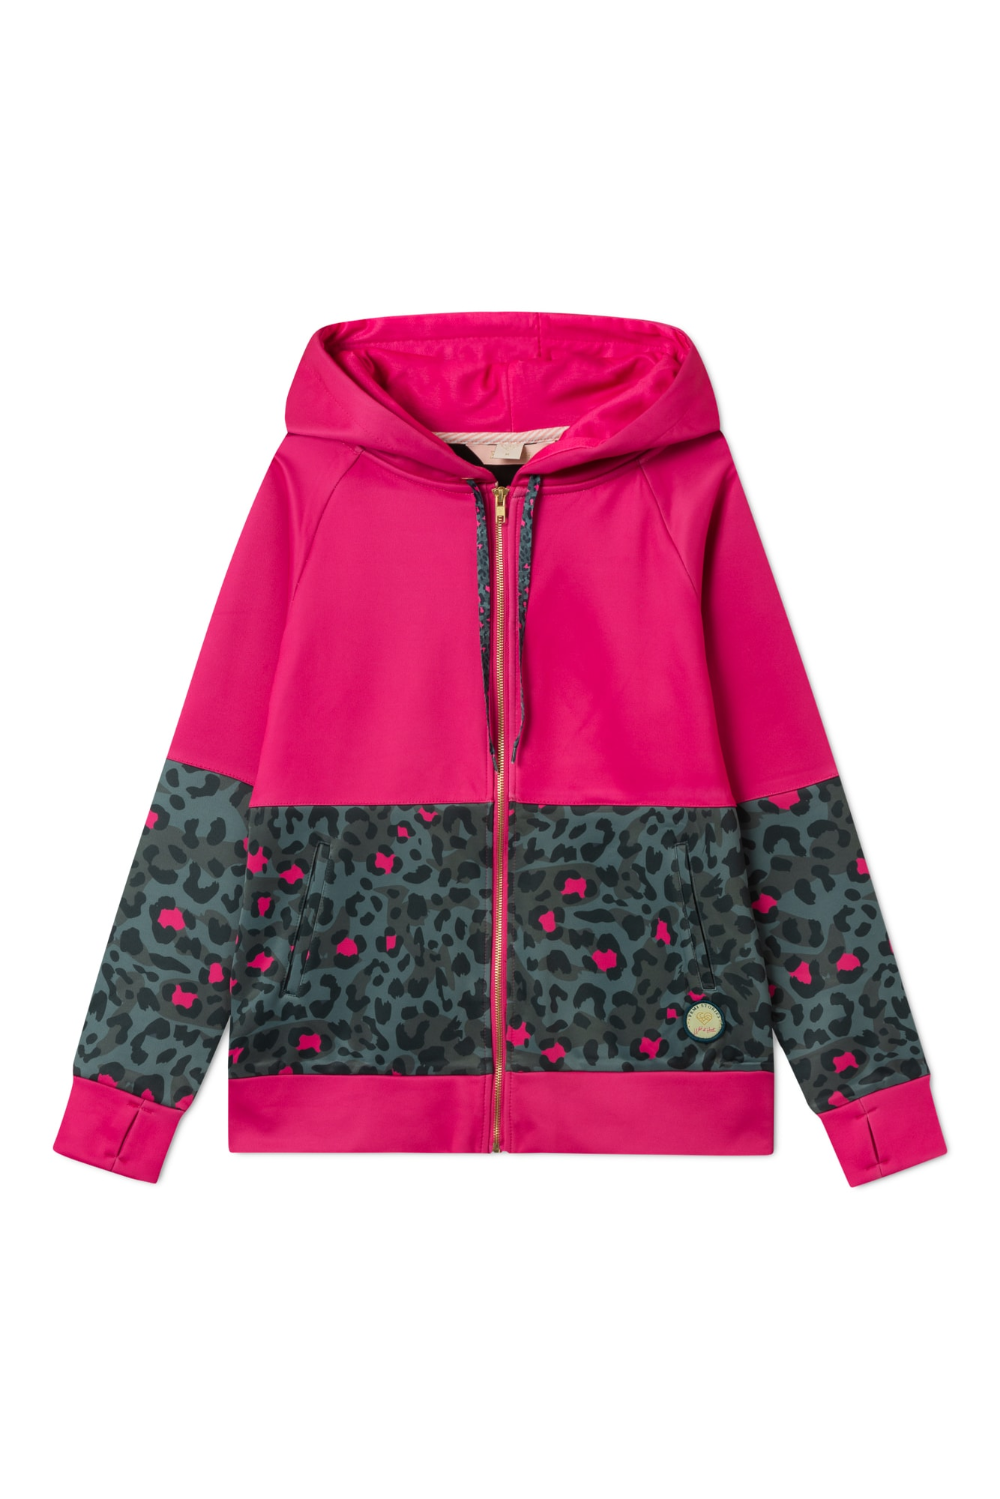 Bluza Tito Dark Green Leopard Outlet Online Athletic Jacket Sweaters